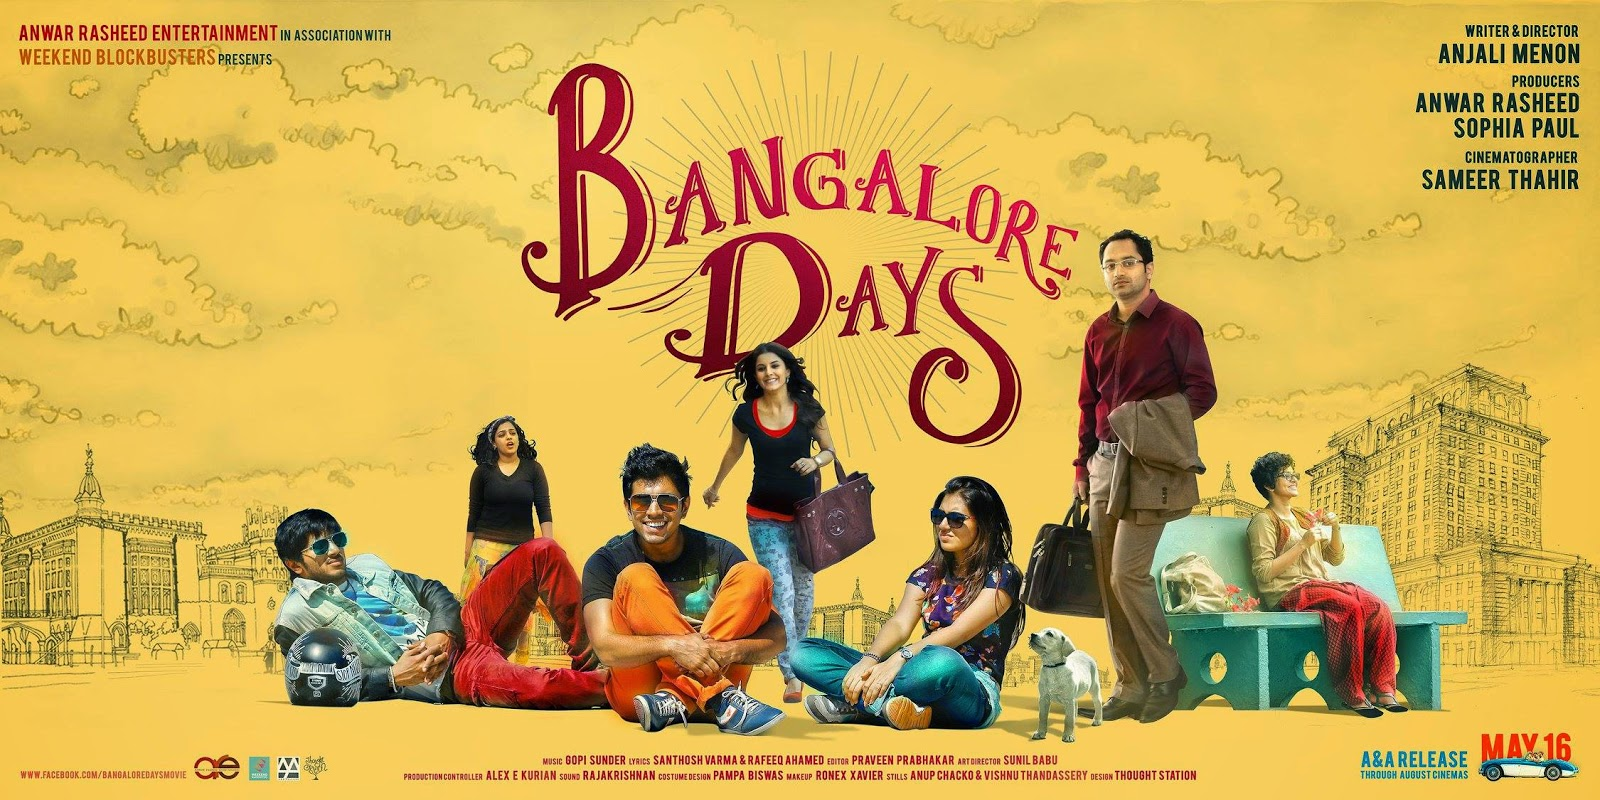 Breaking Movies Bangalore Days Malayalam Movie Review